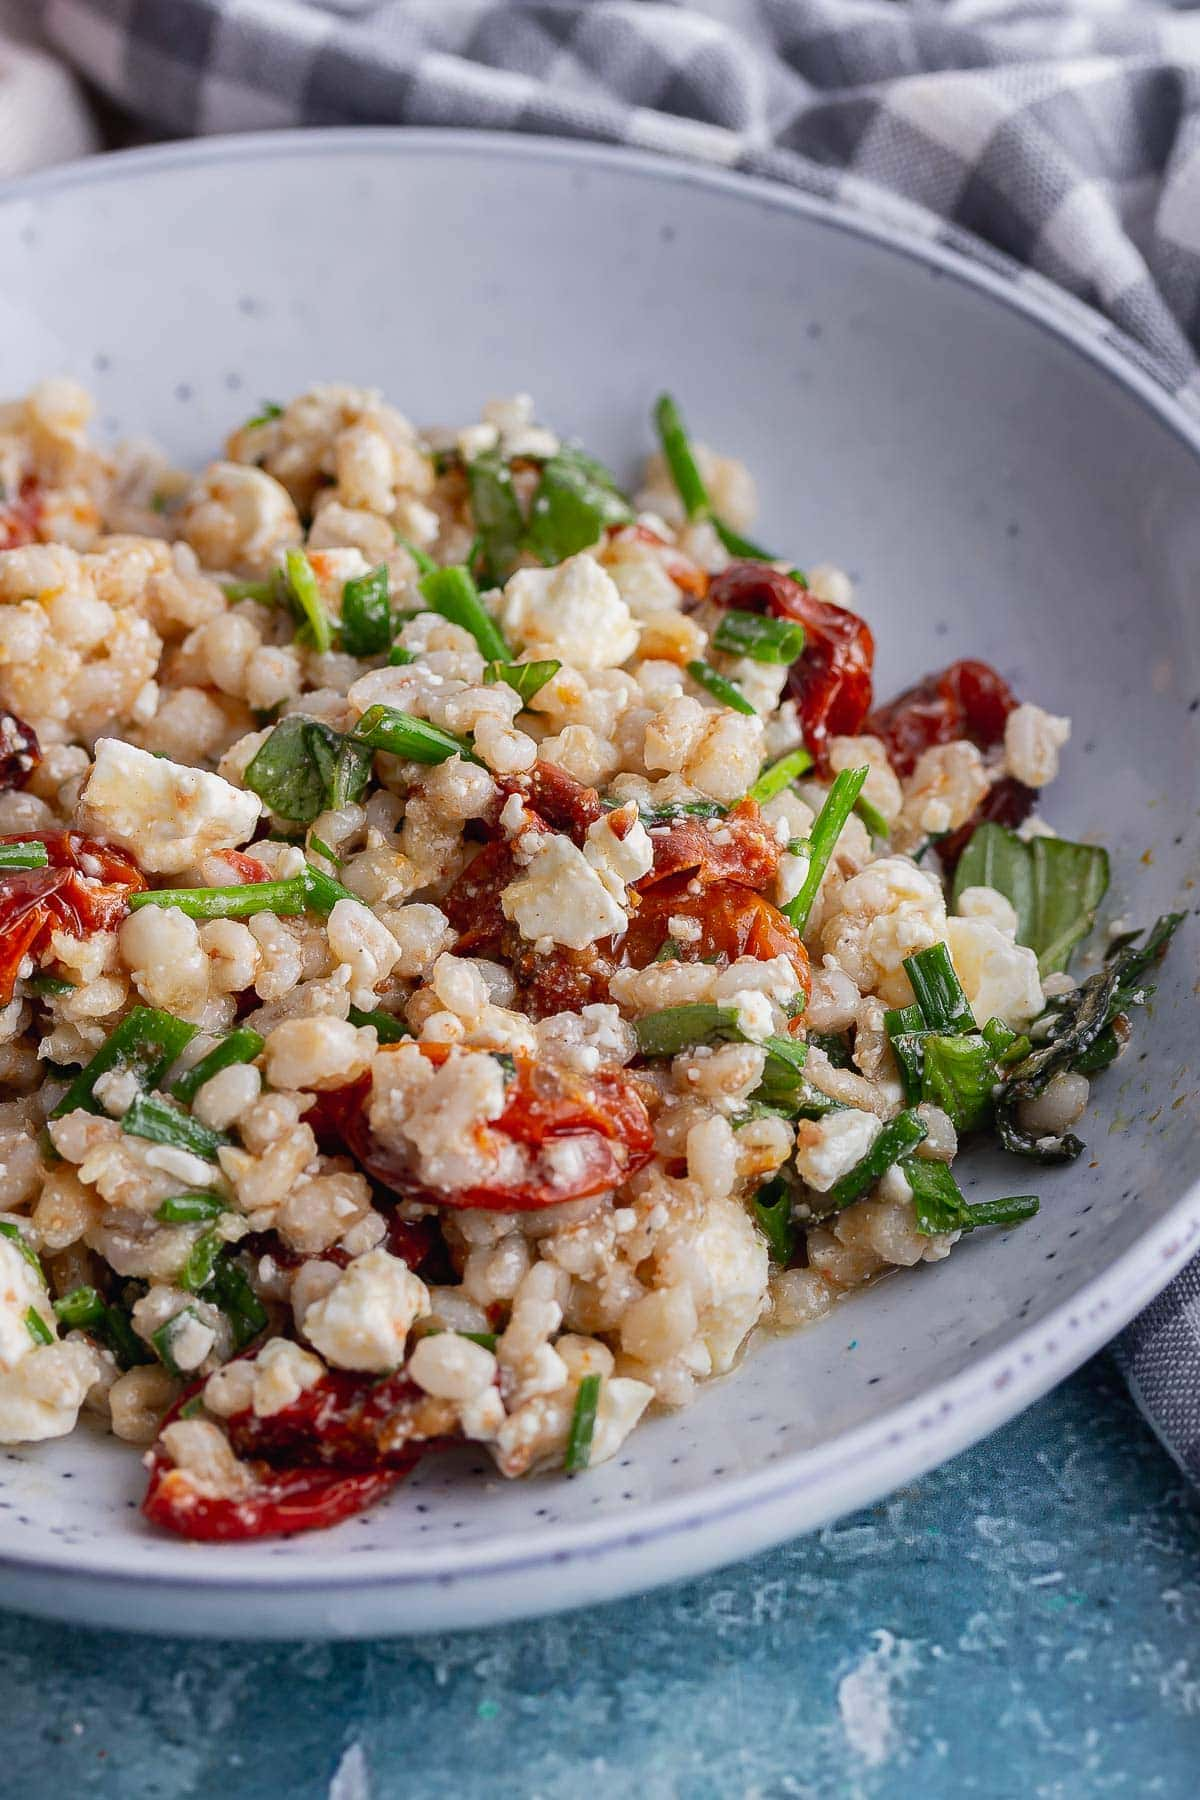 Close up of a pearl barley salad in a blue bowl